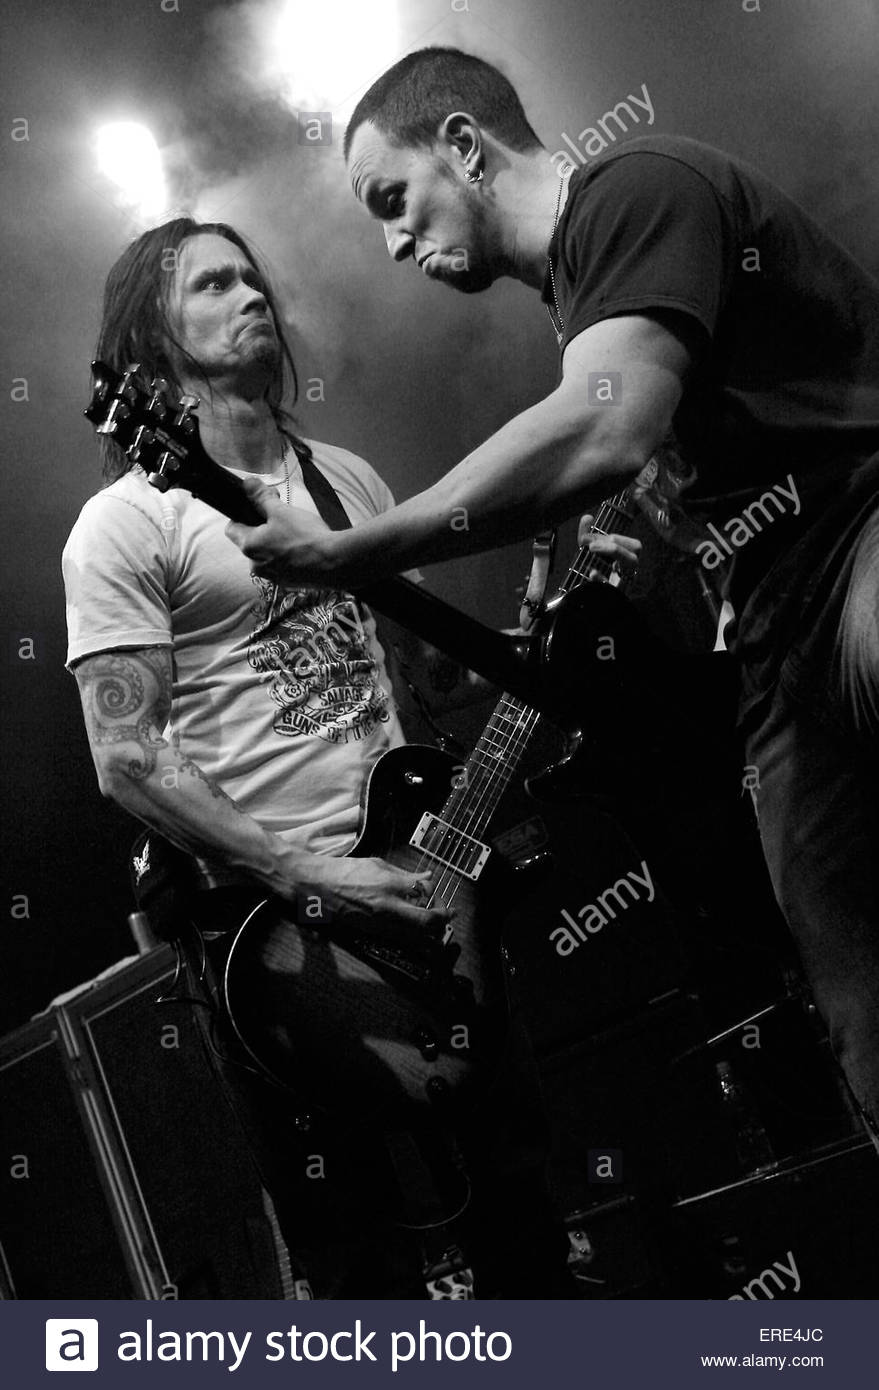 Myles Kennedy and Mark Tremonti of Alter Bridge performing in Bristol 25 January 2008 - Stock Image